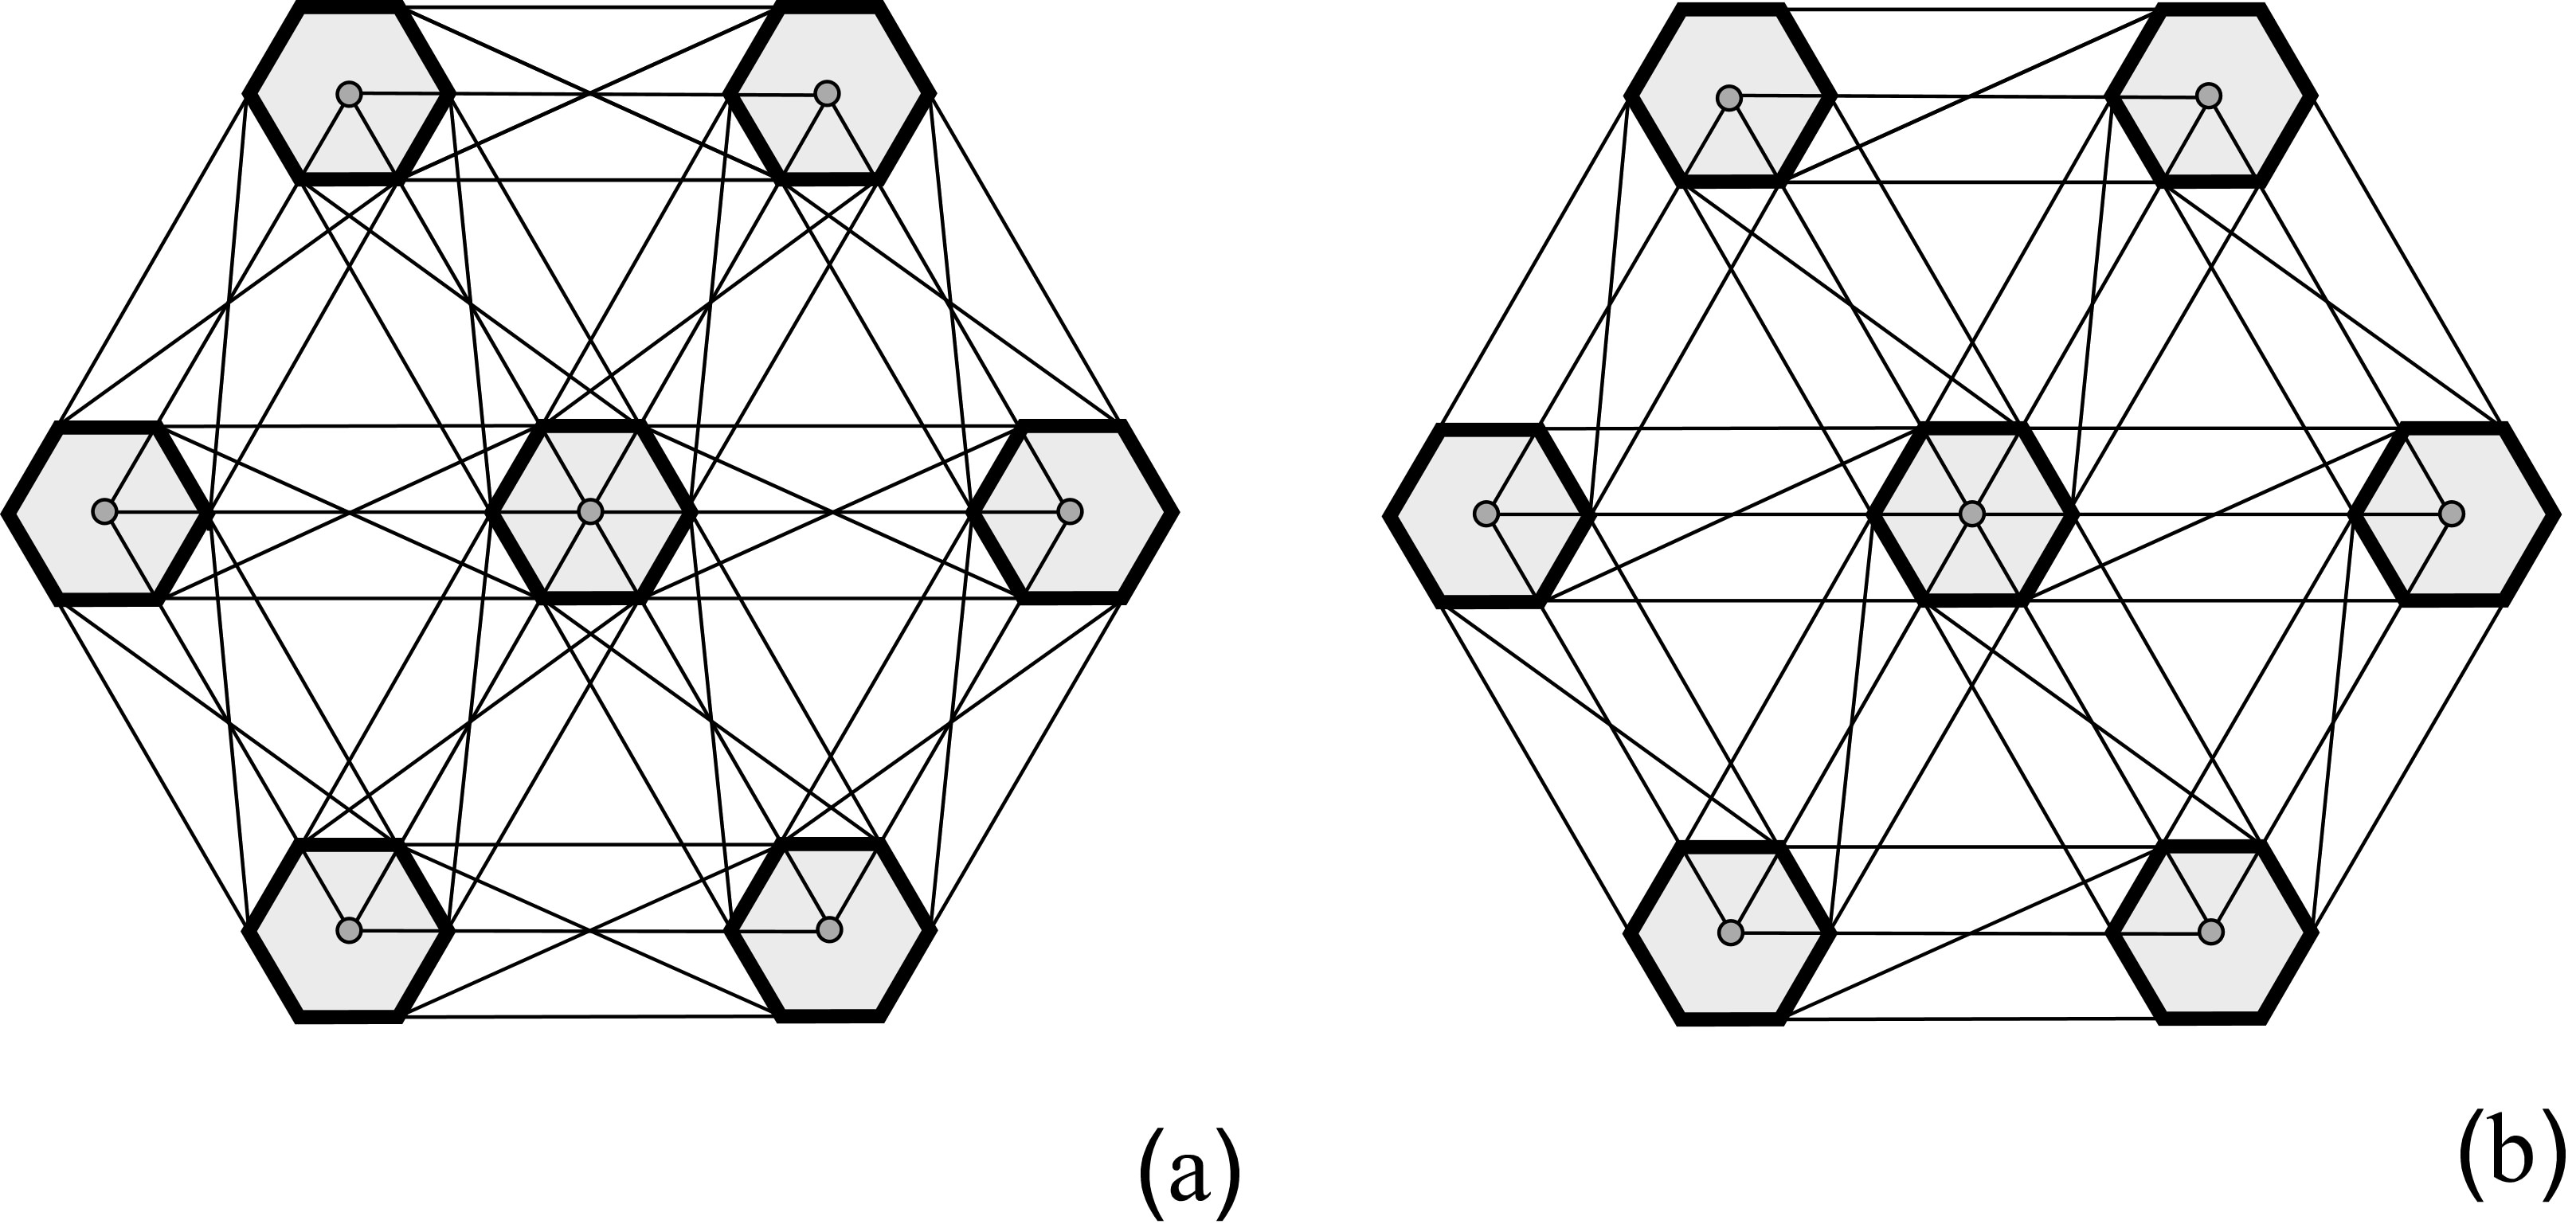 Hexagonal cells with a symmetrical (a) and chiral (b) connection of particles